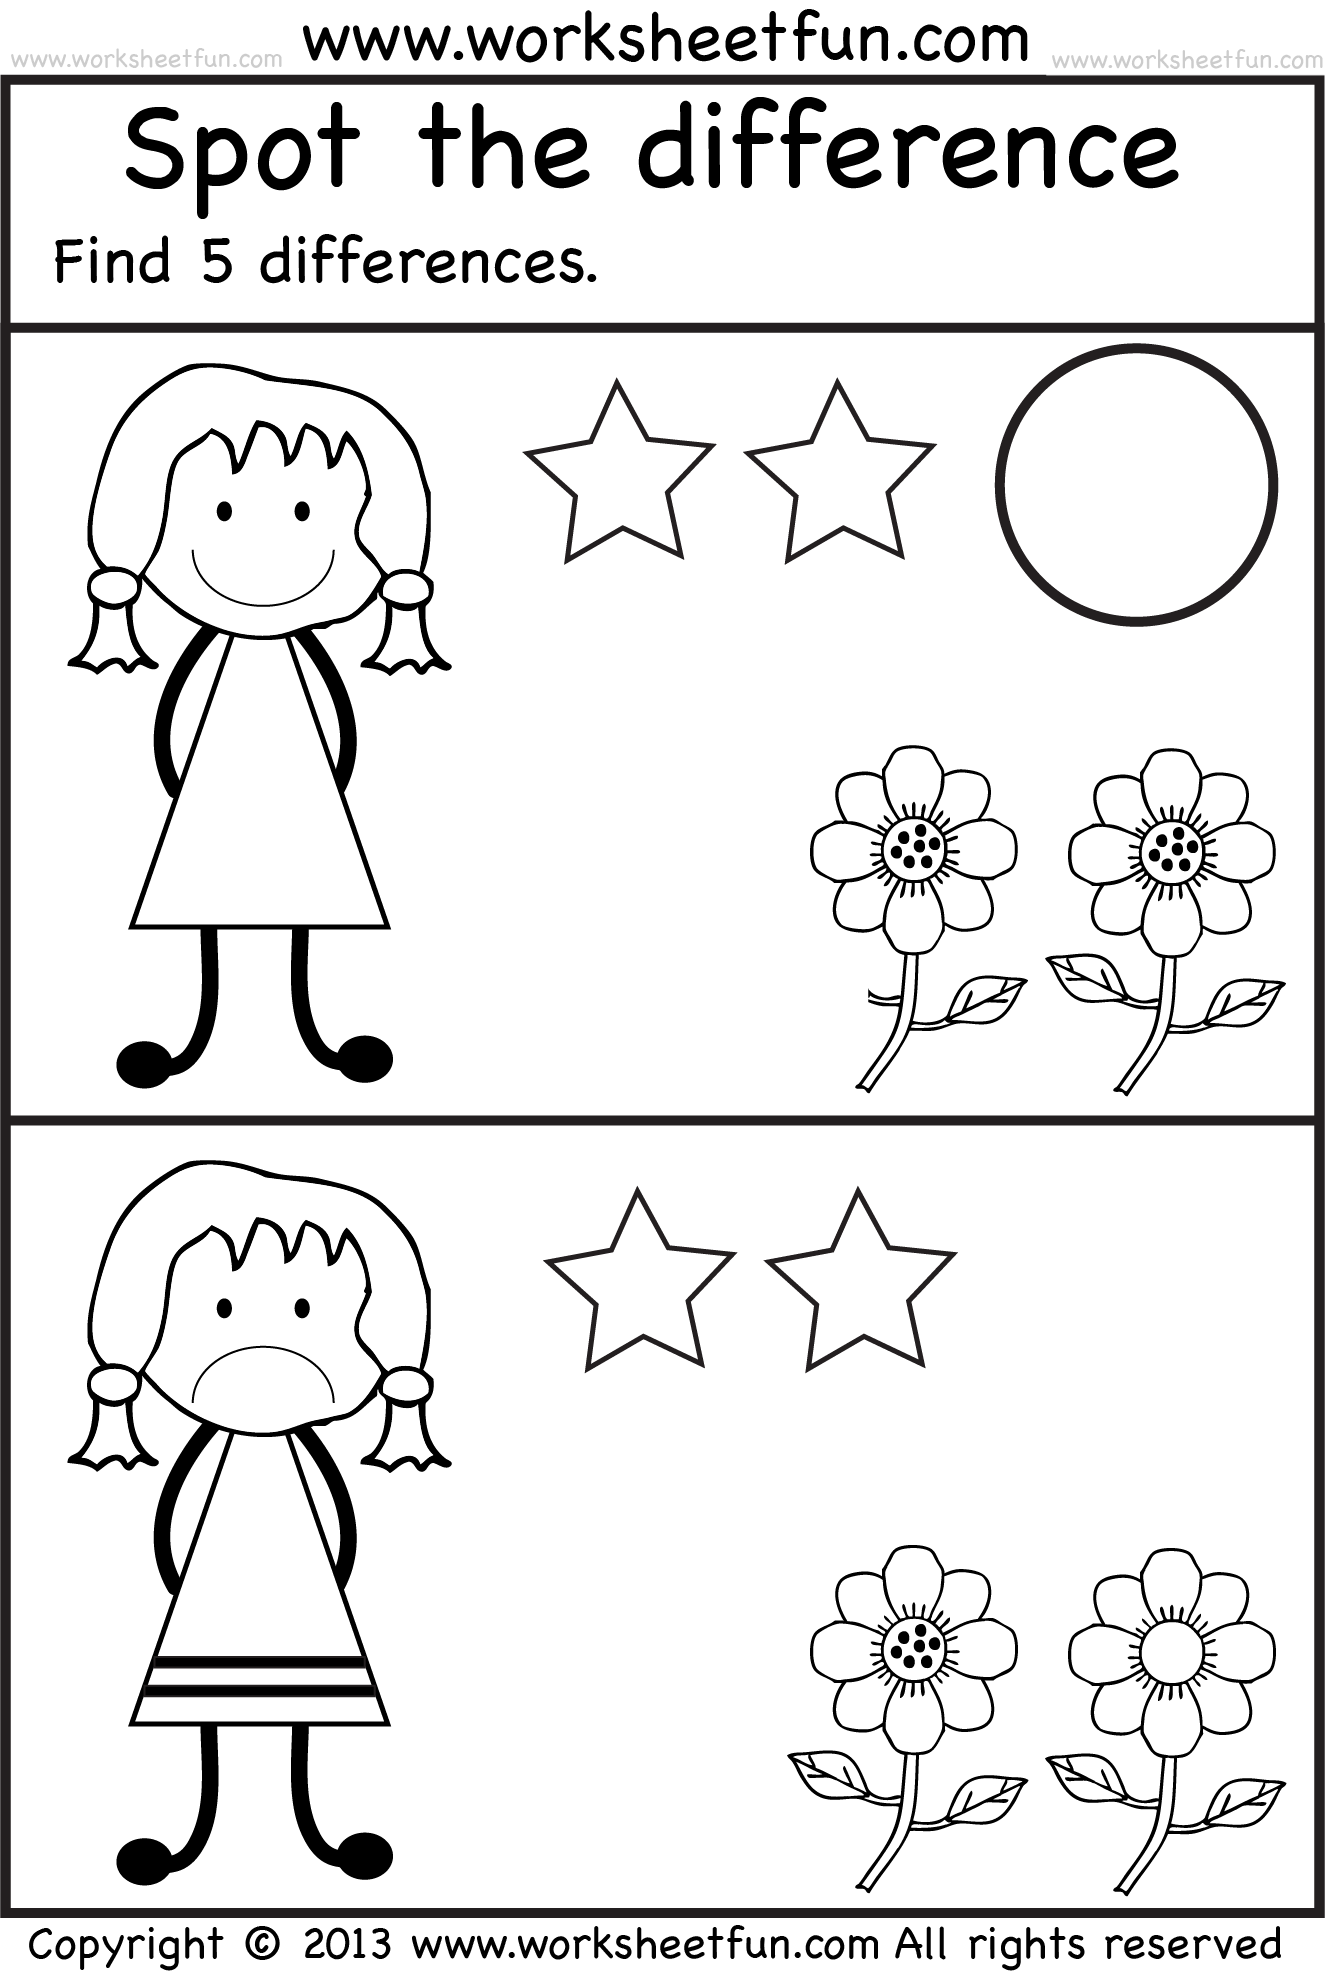 Worksheets Spot The Difference Worksheets spot the differences pre k activities pinterest worksheets differences